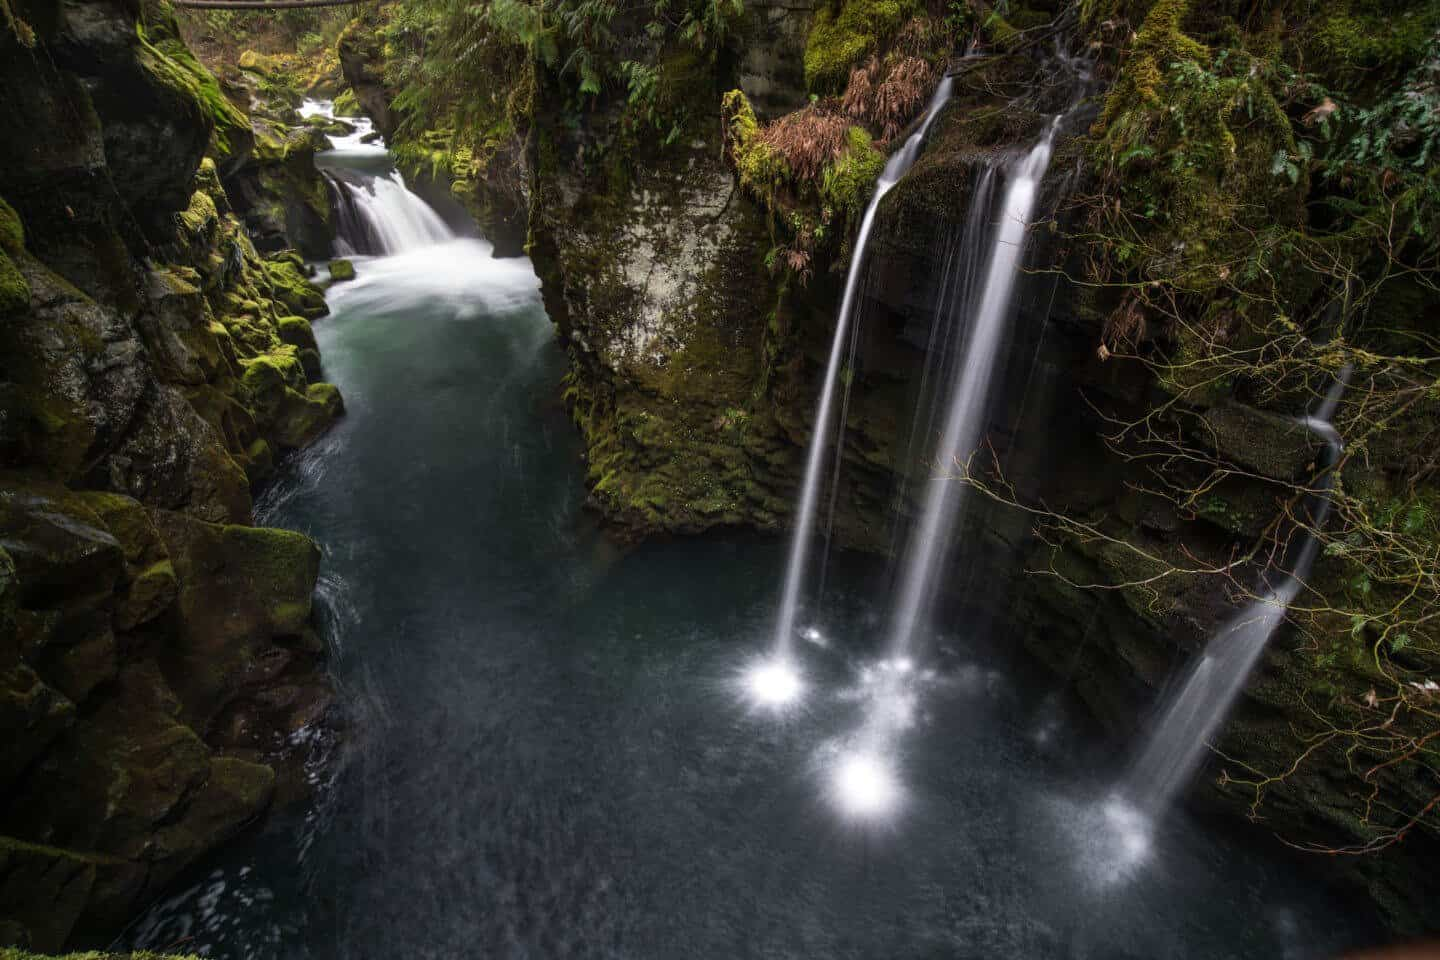 My favorite other waterfall near Toketee Falls; a hidden gem along the trail to Toketee Viewpoint.